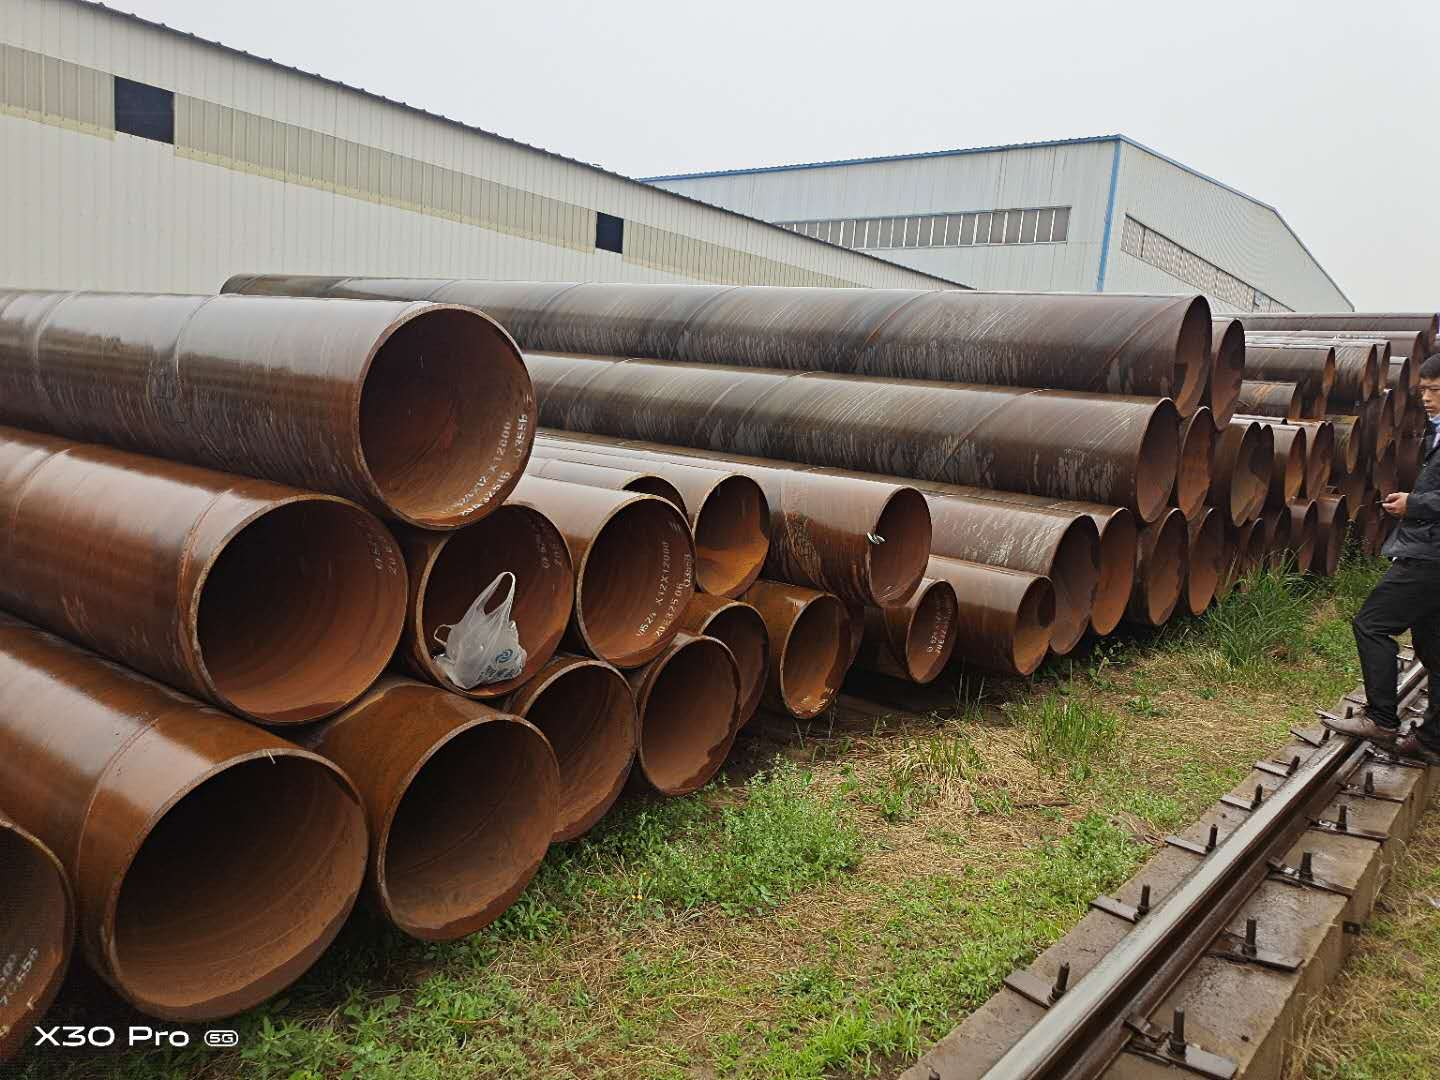 Several Common Skills in Purchasing Spiral Steel Pipes